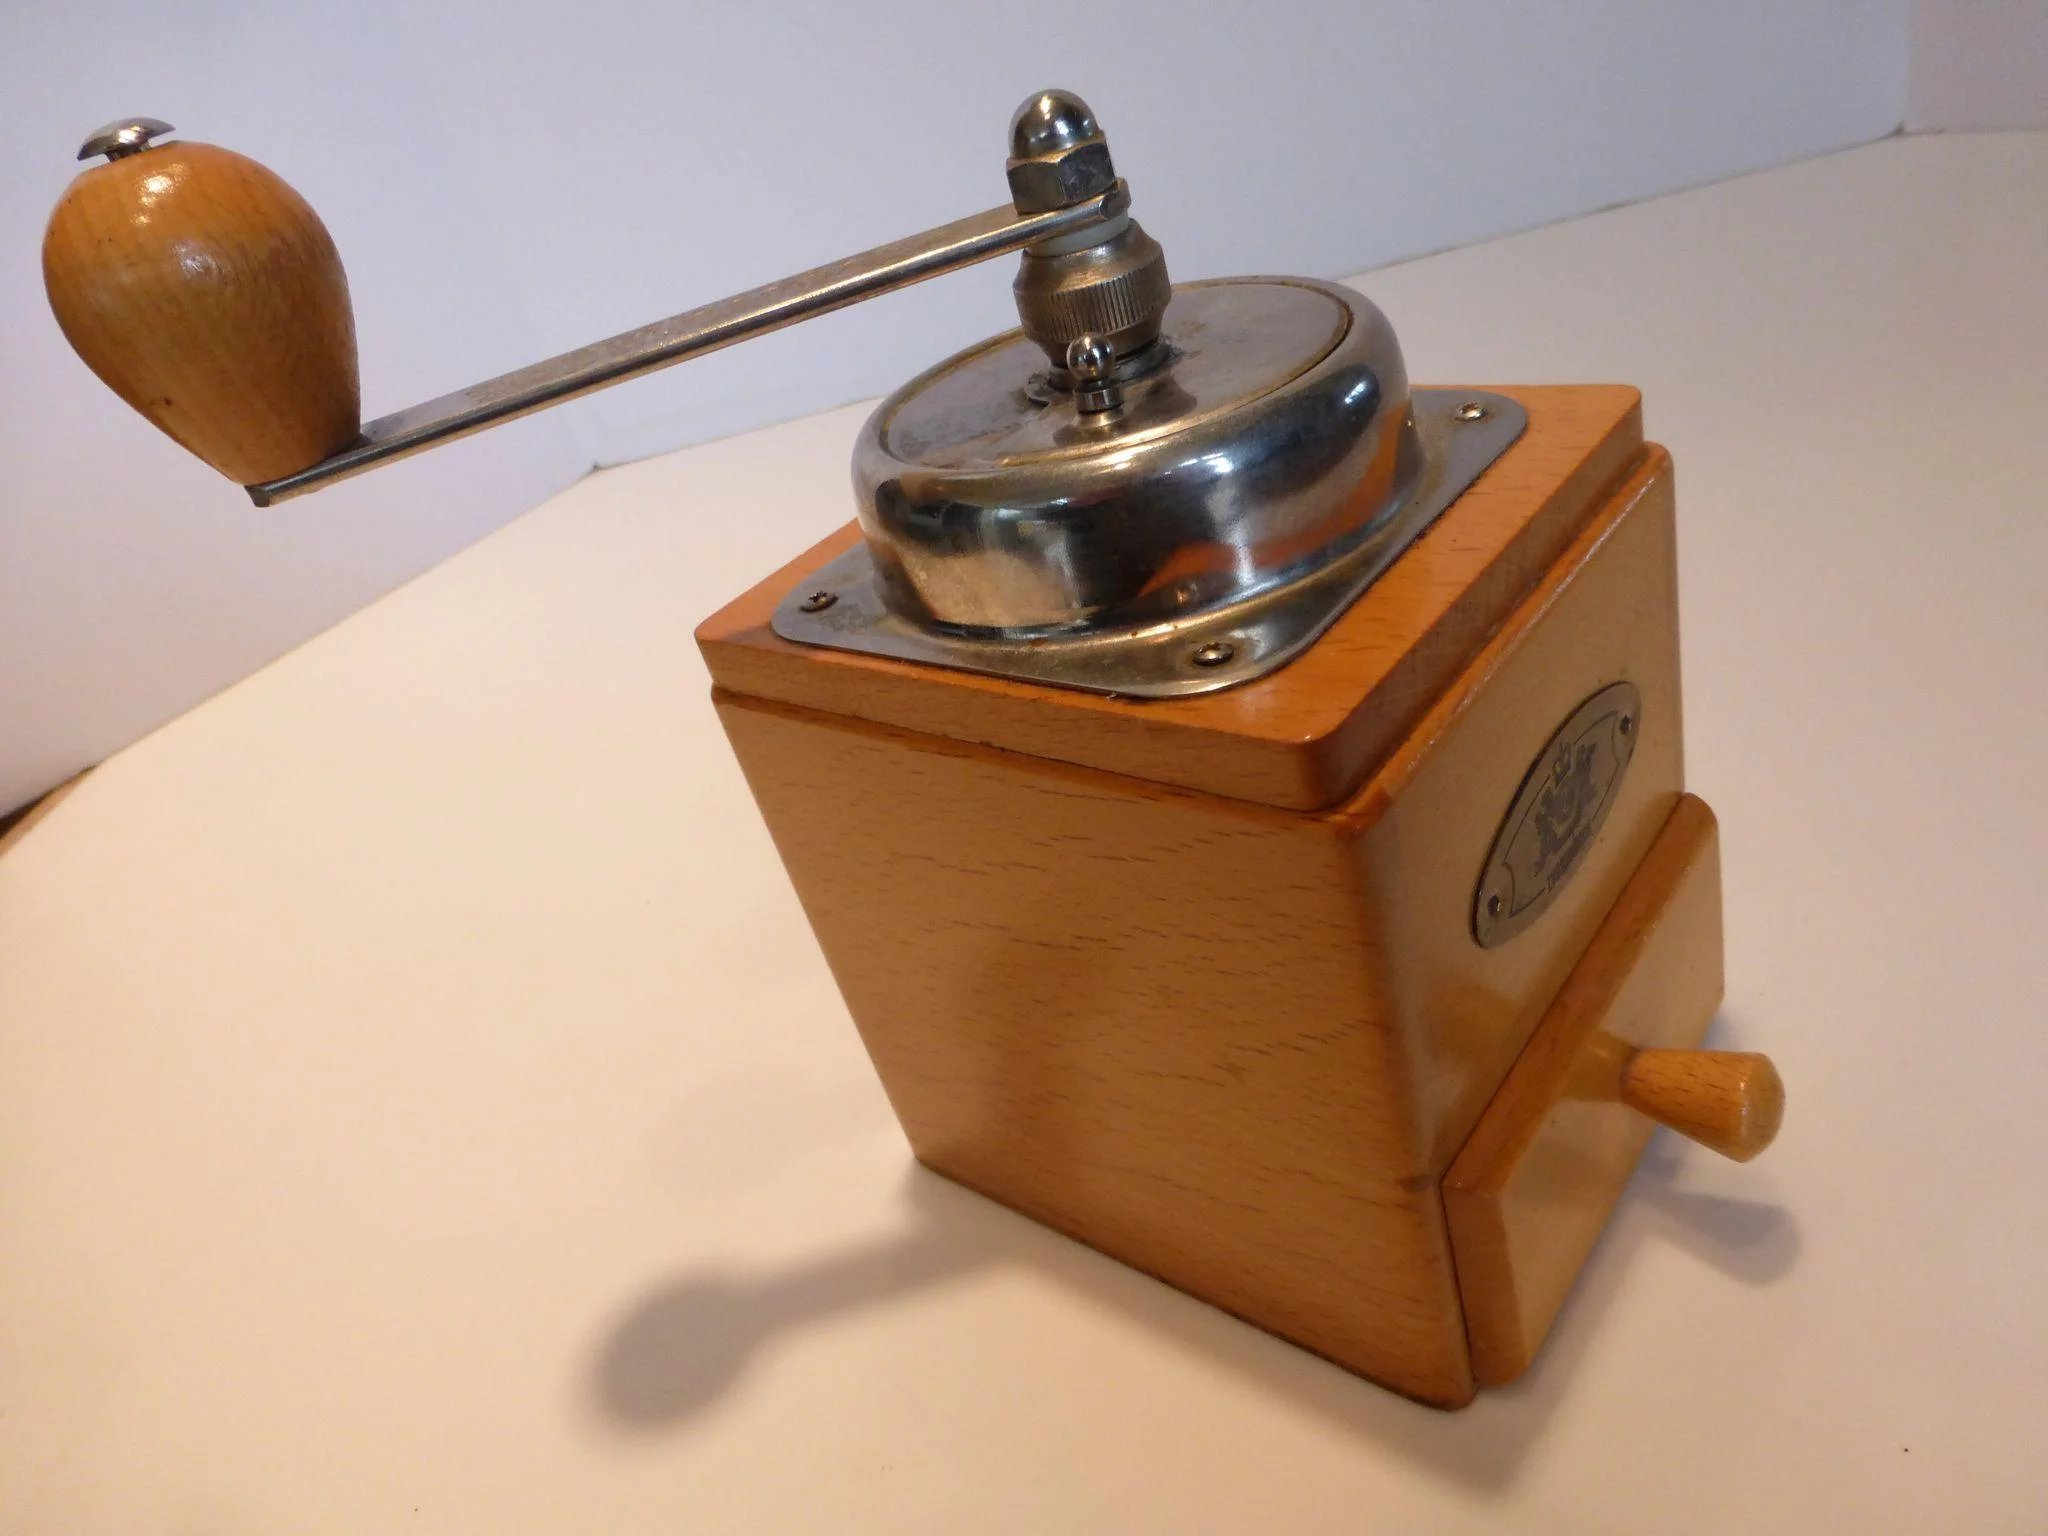 Vintage Zassenhaus Wooden Crank Coffee Mill Grinder Countertop Germany To Expand